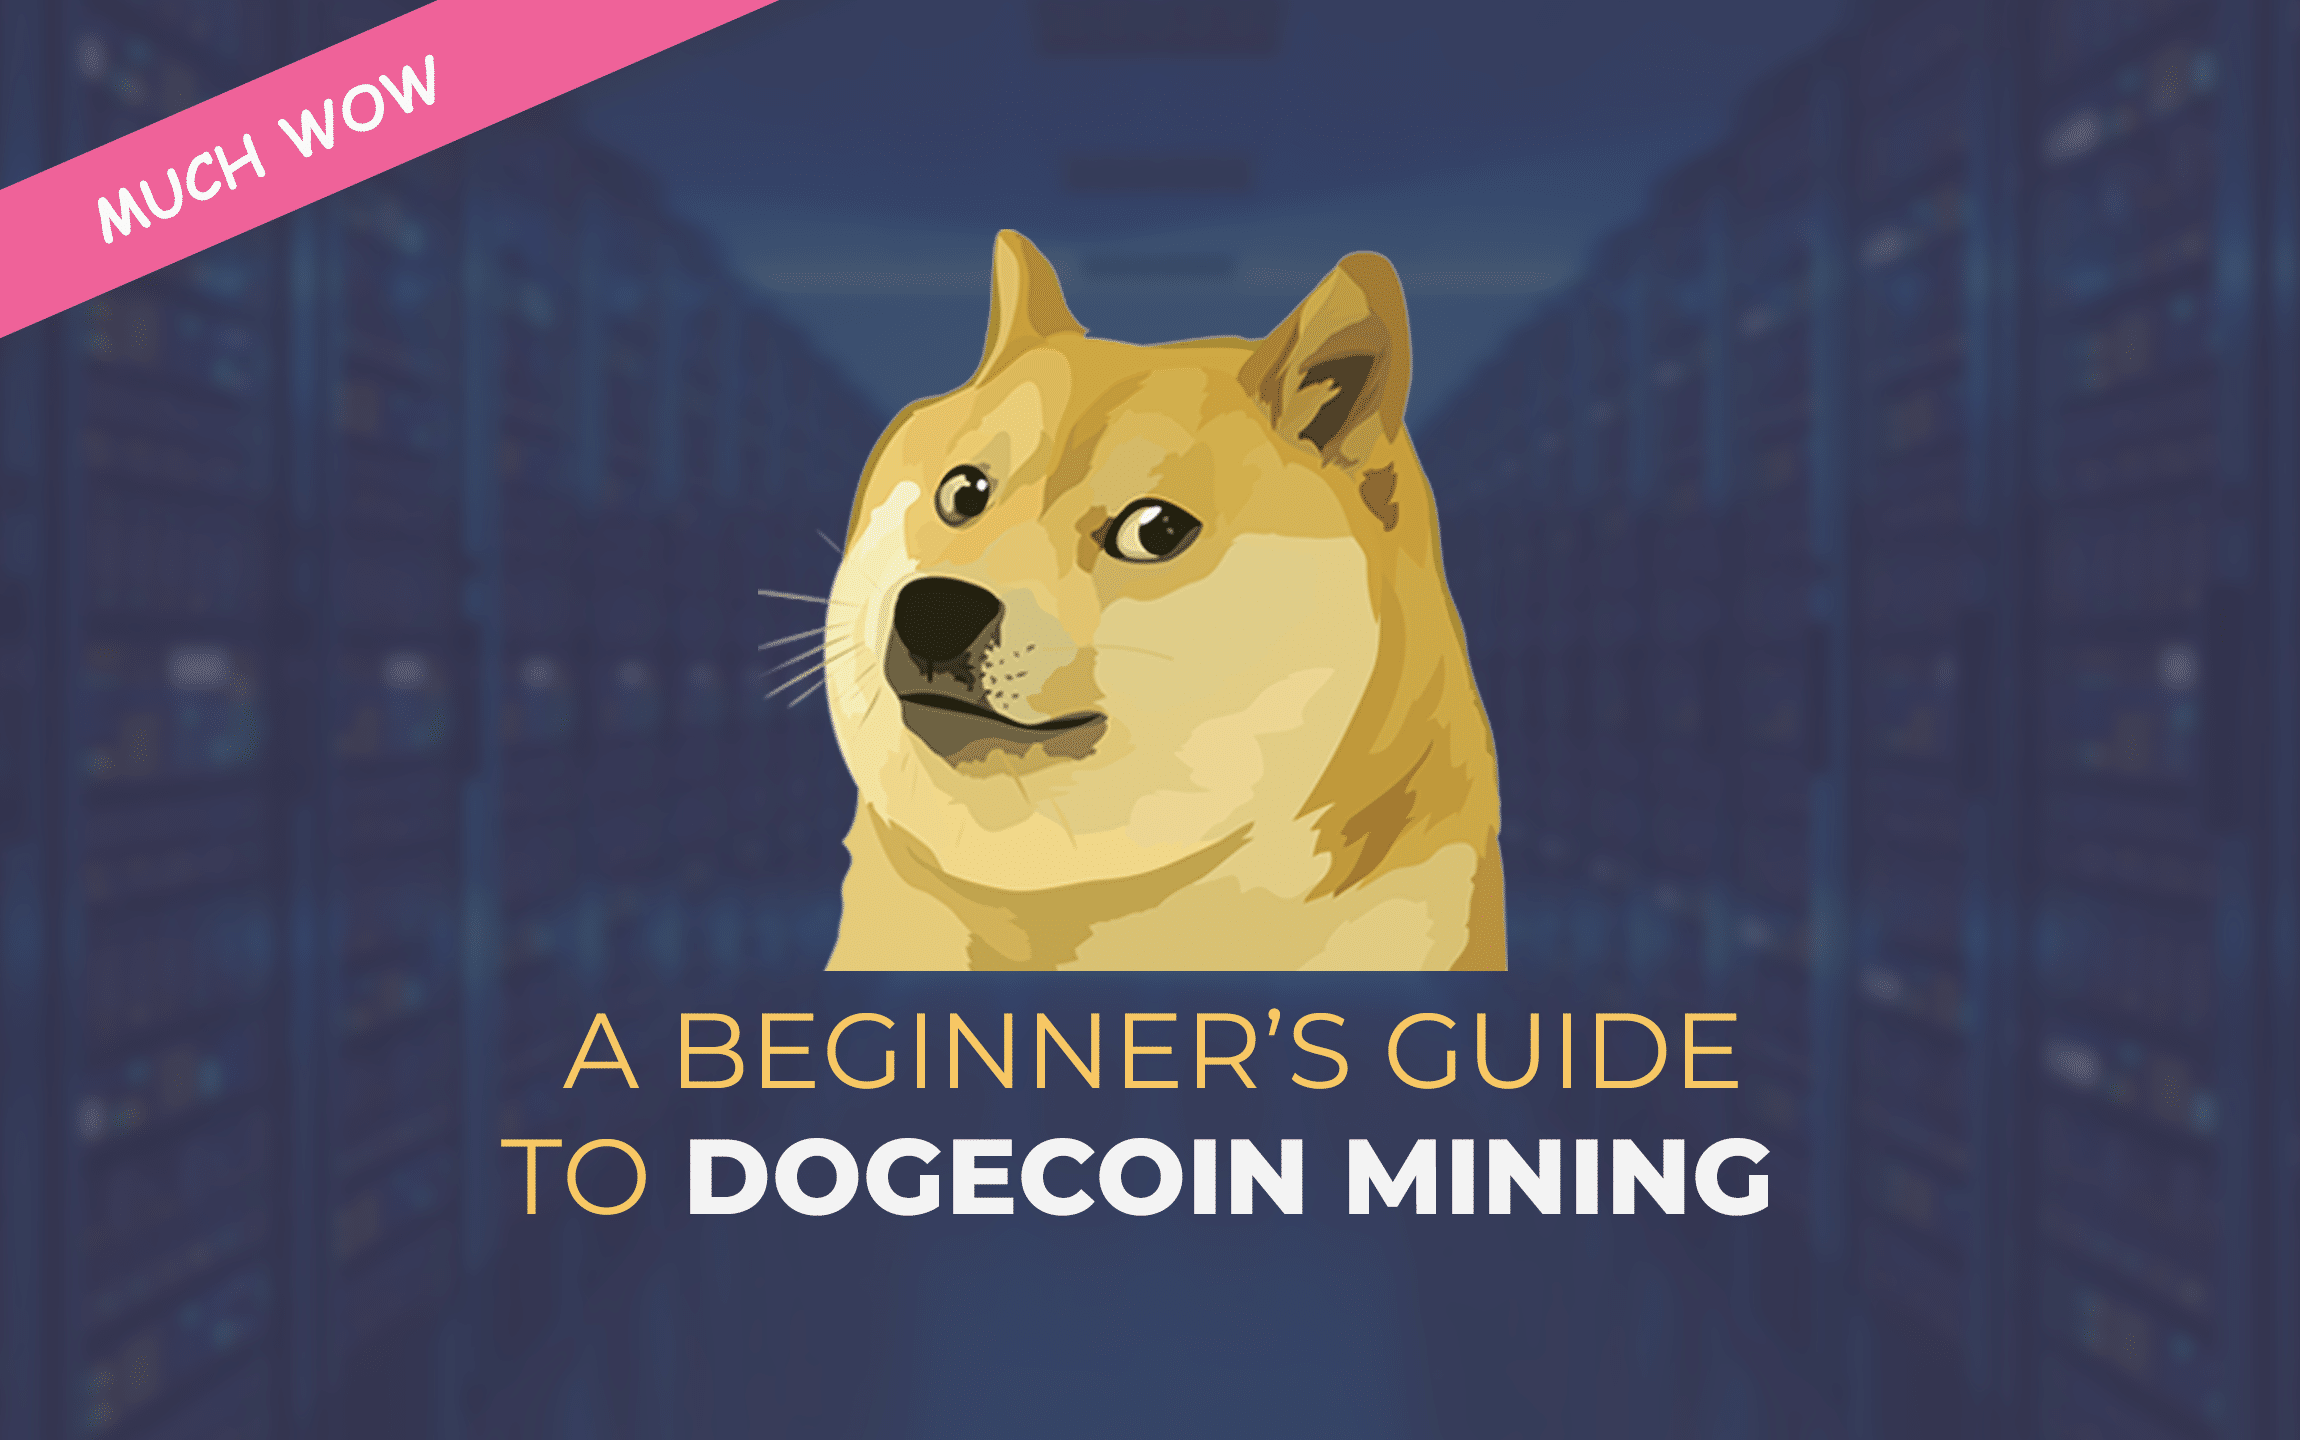 Dogecoin Mining | A Beginner's Guide - CoinCentral